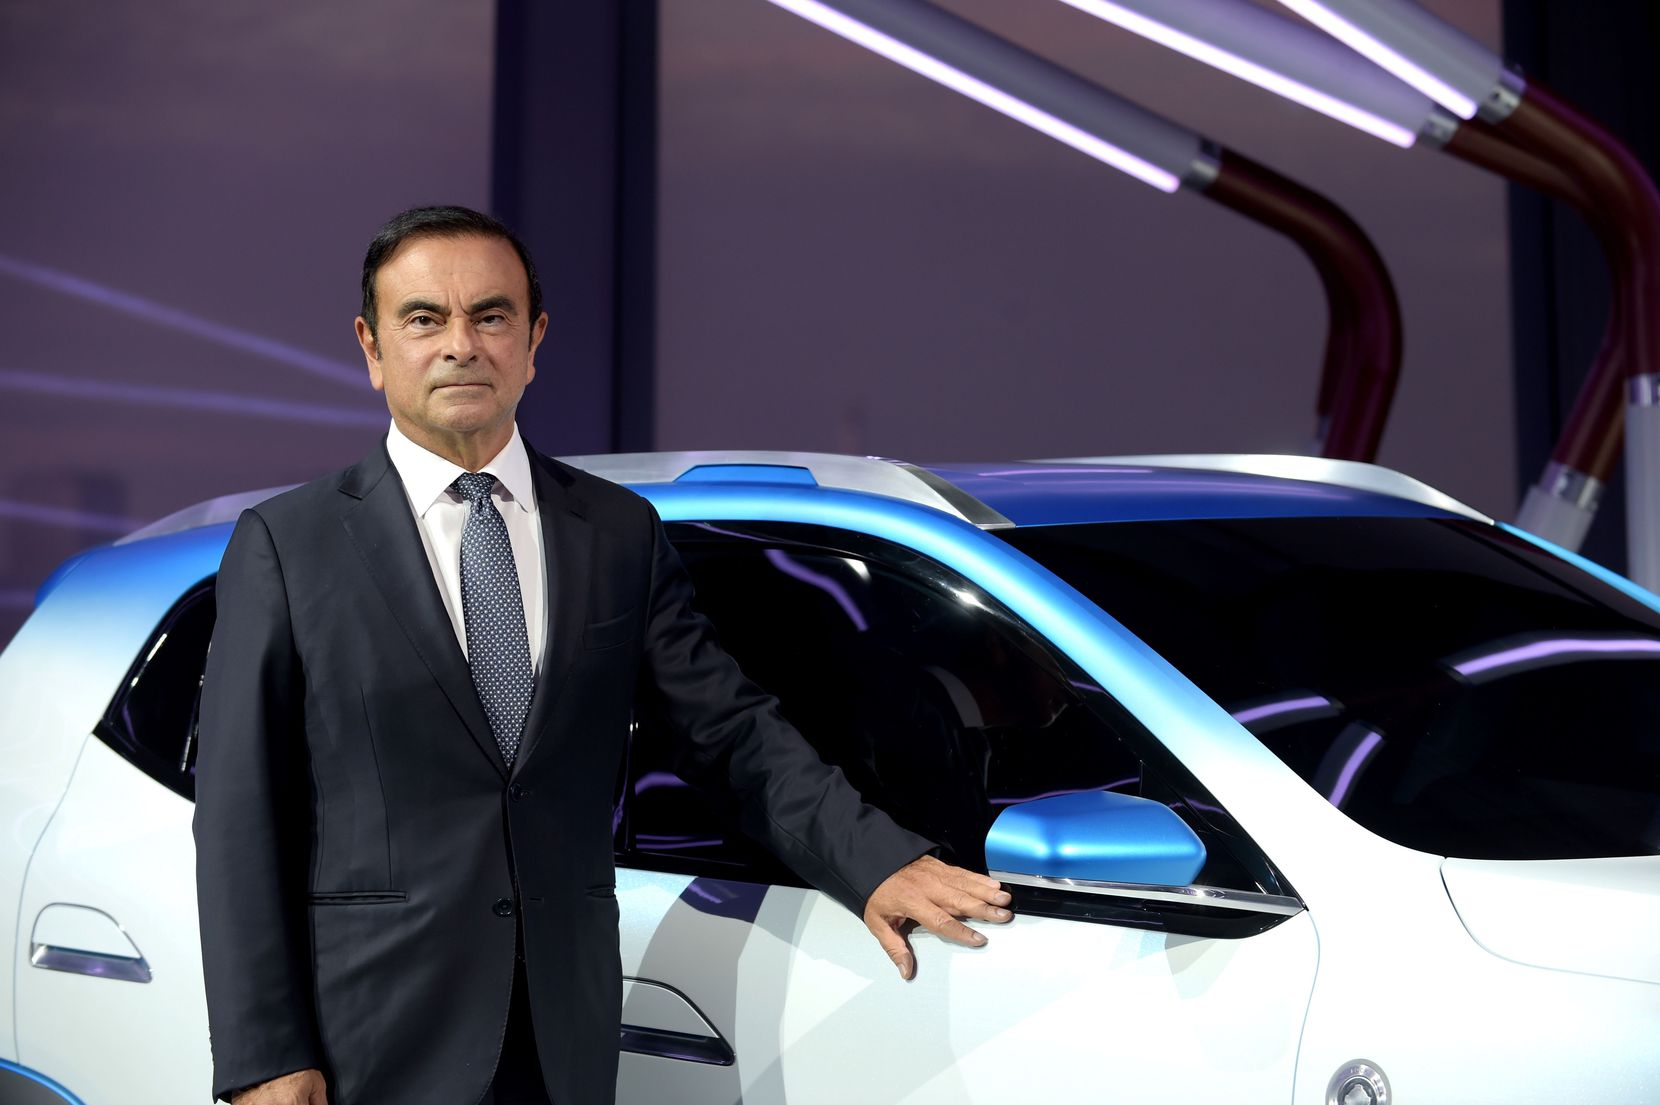 In a 2018 file photo, then chairman and CEO of Renault-Nissan-Mitsubishi Carlos Ghosn presented the Renault K-ZE for the Chinese market at the Paris Motor Show.